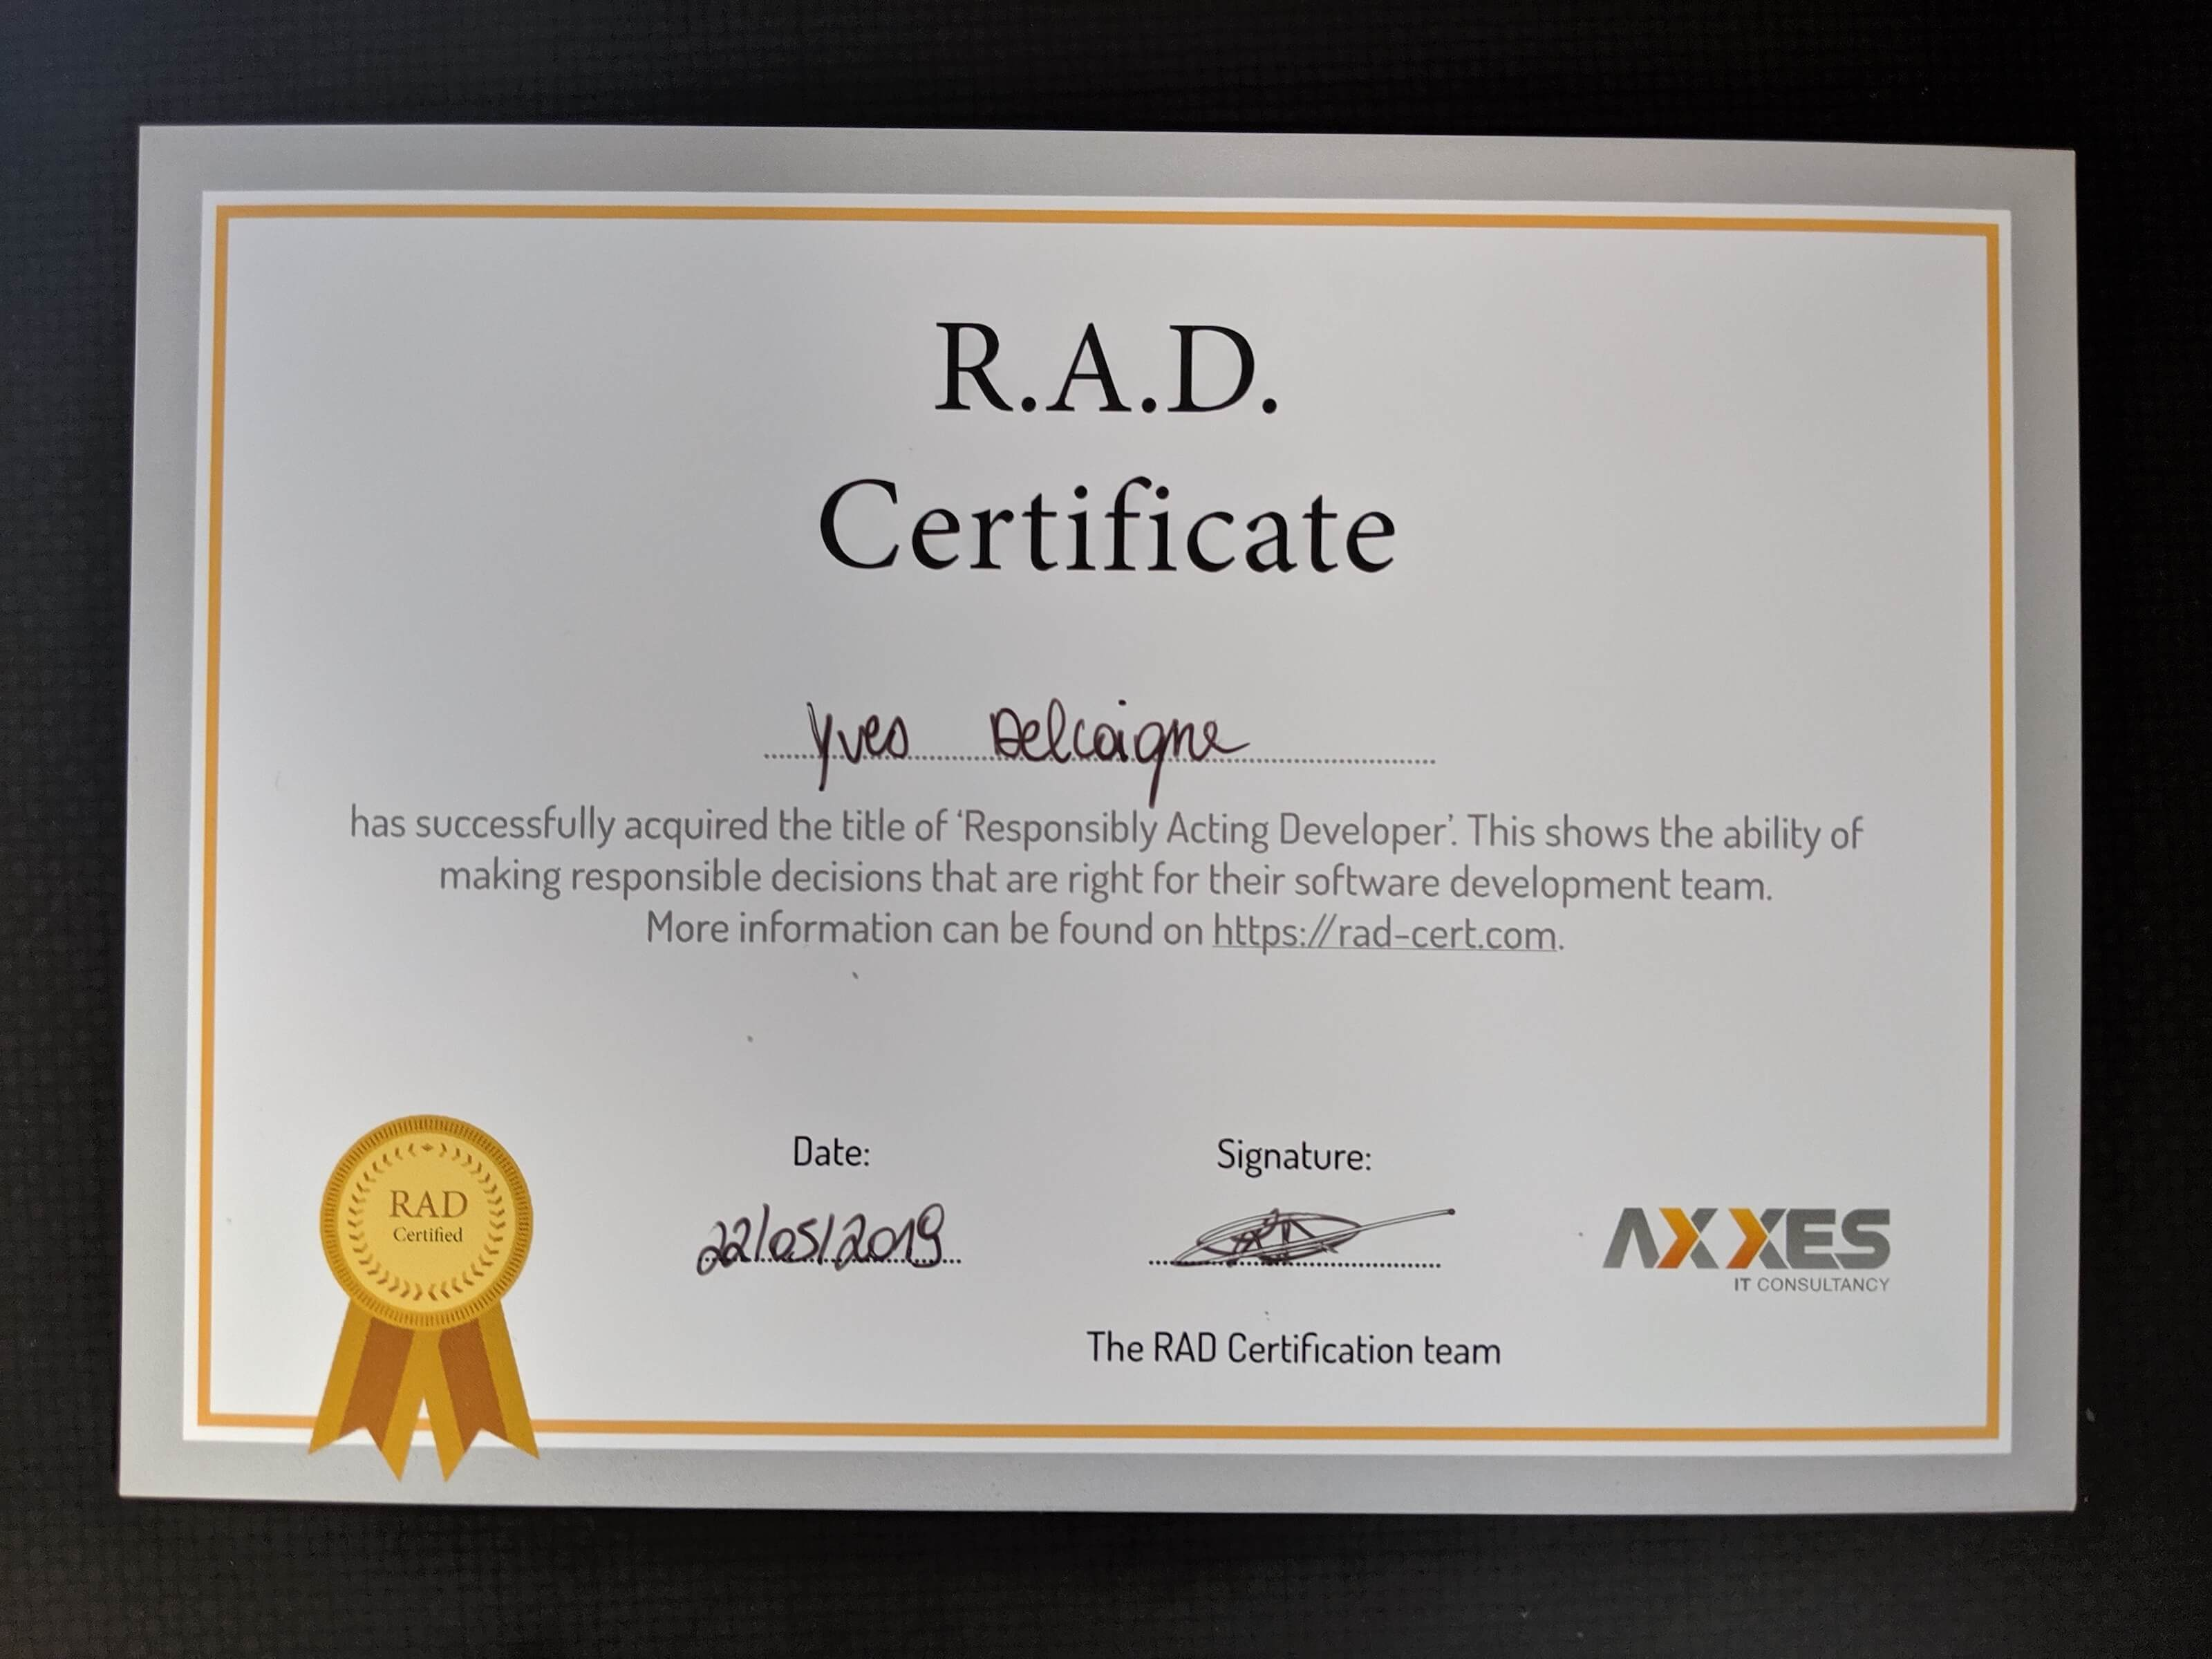 R.A.D. Certificate of Yves Delcoigne